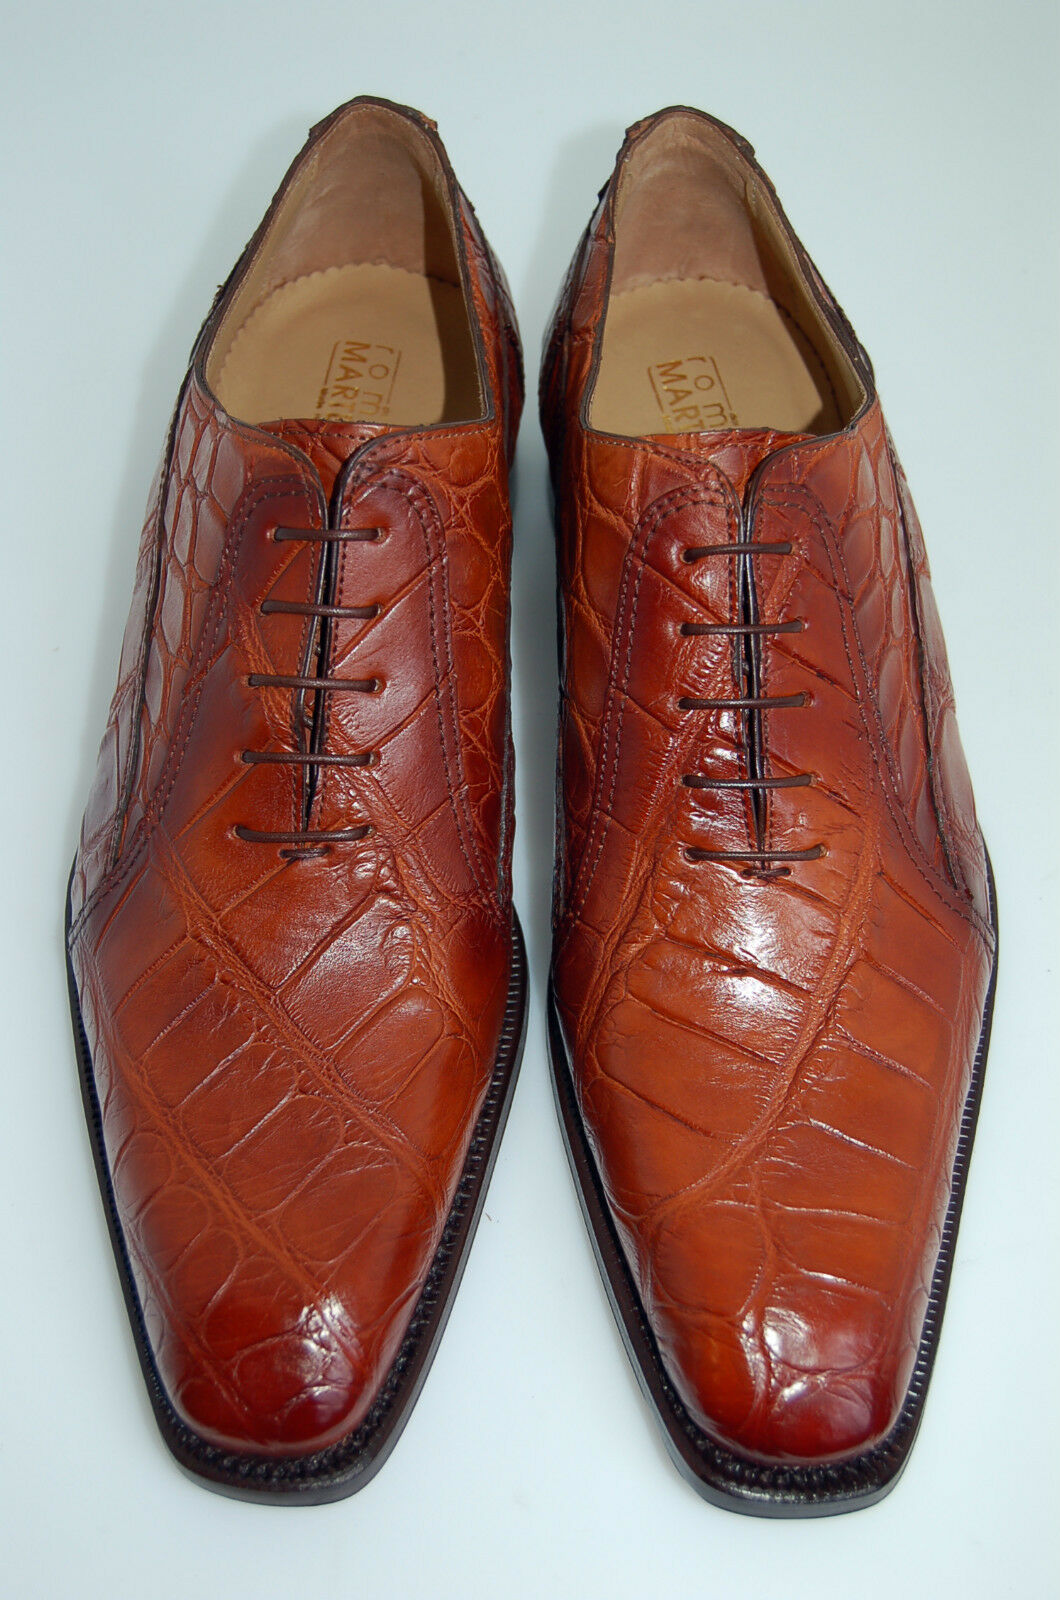 marca MAN - 44-10eu- OXFORD - GENUINE AIRBRUSH arancia arancia arancia ALLIGATOR-LEATHER SOLE BLAKE  punto vendita